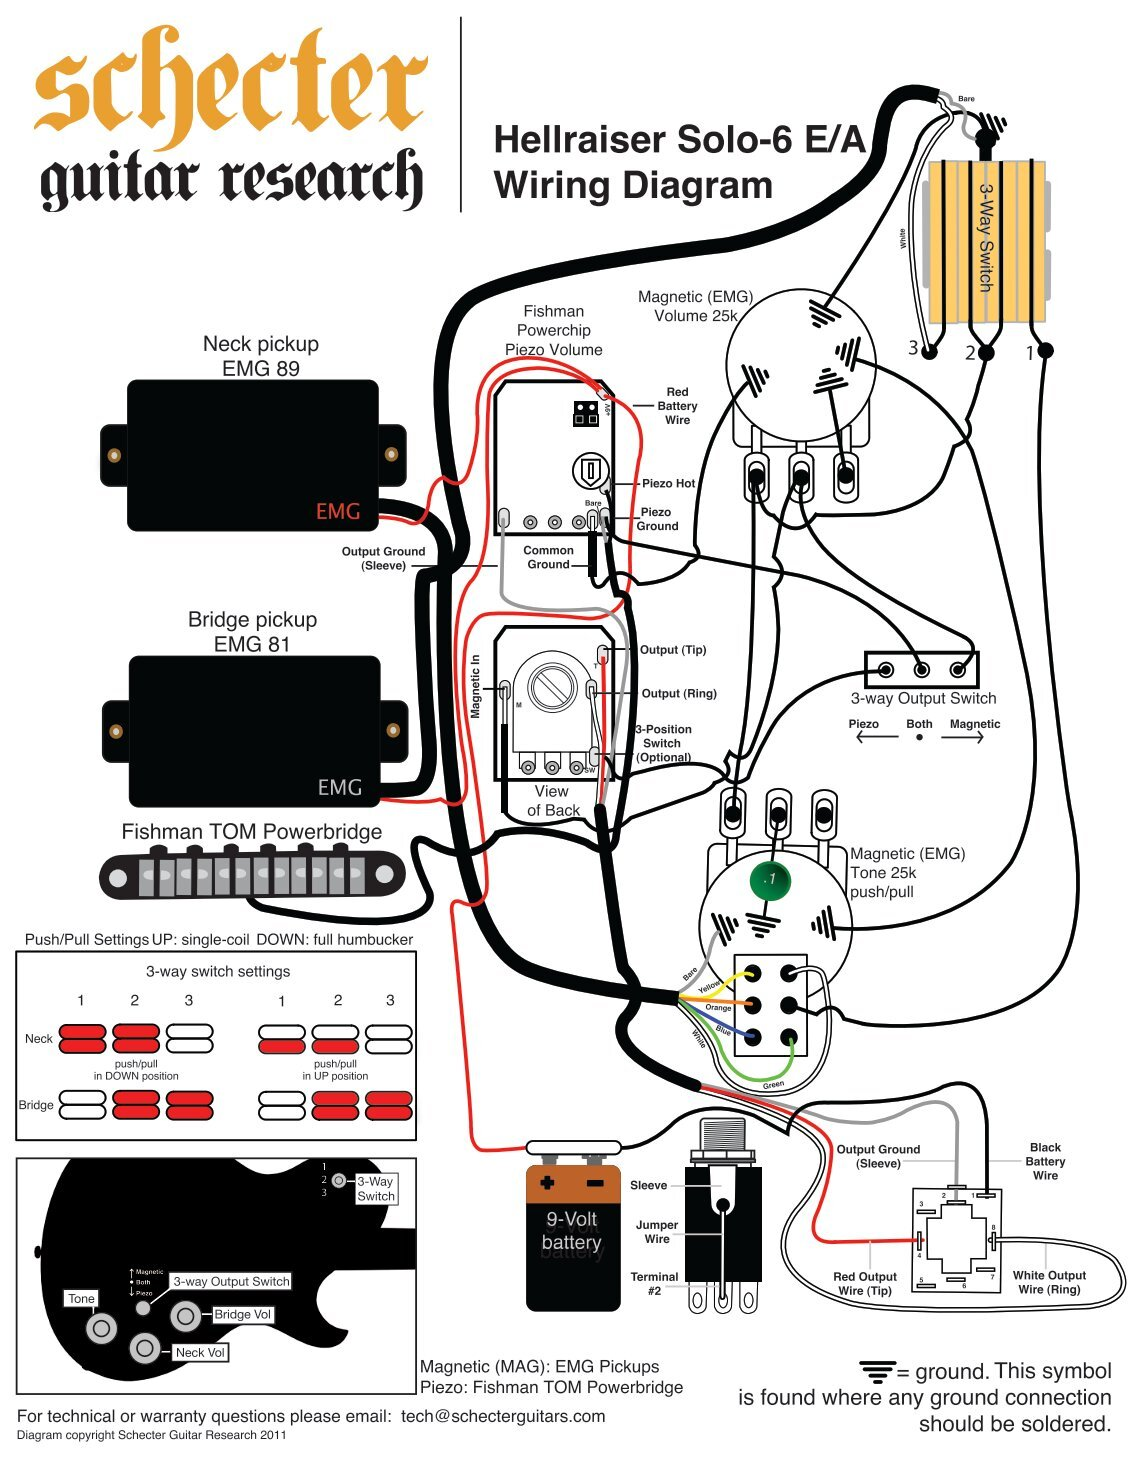 hellraiser solo 6 wiring diagram schecter guitars?quality\\\\\\\\\\\\\\\\\\\\\\\\\\\\\\\=85 emg hz wiring diagram color emg hz passive wiring diagram \u2022 205 ufc co EMG Quick Connect Wiring Diagram at crackthecode.co